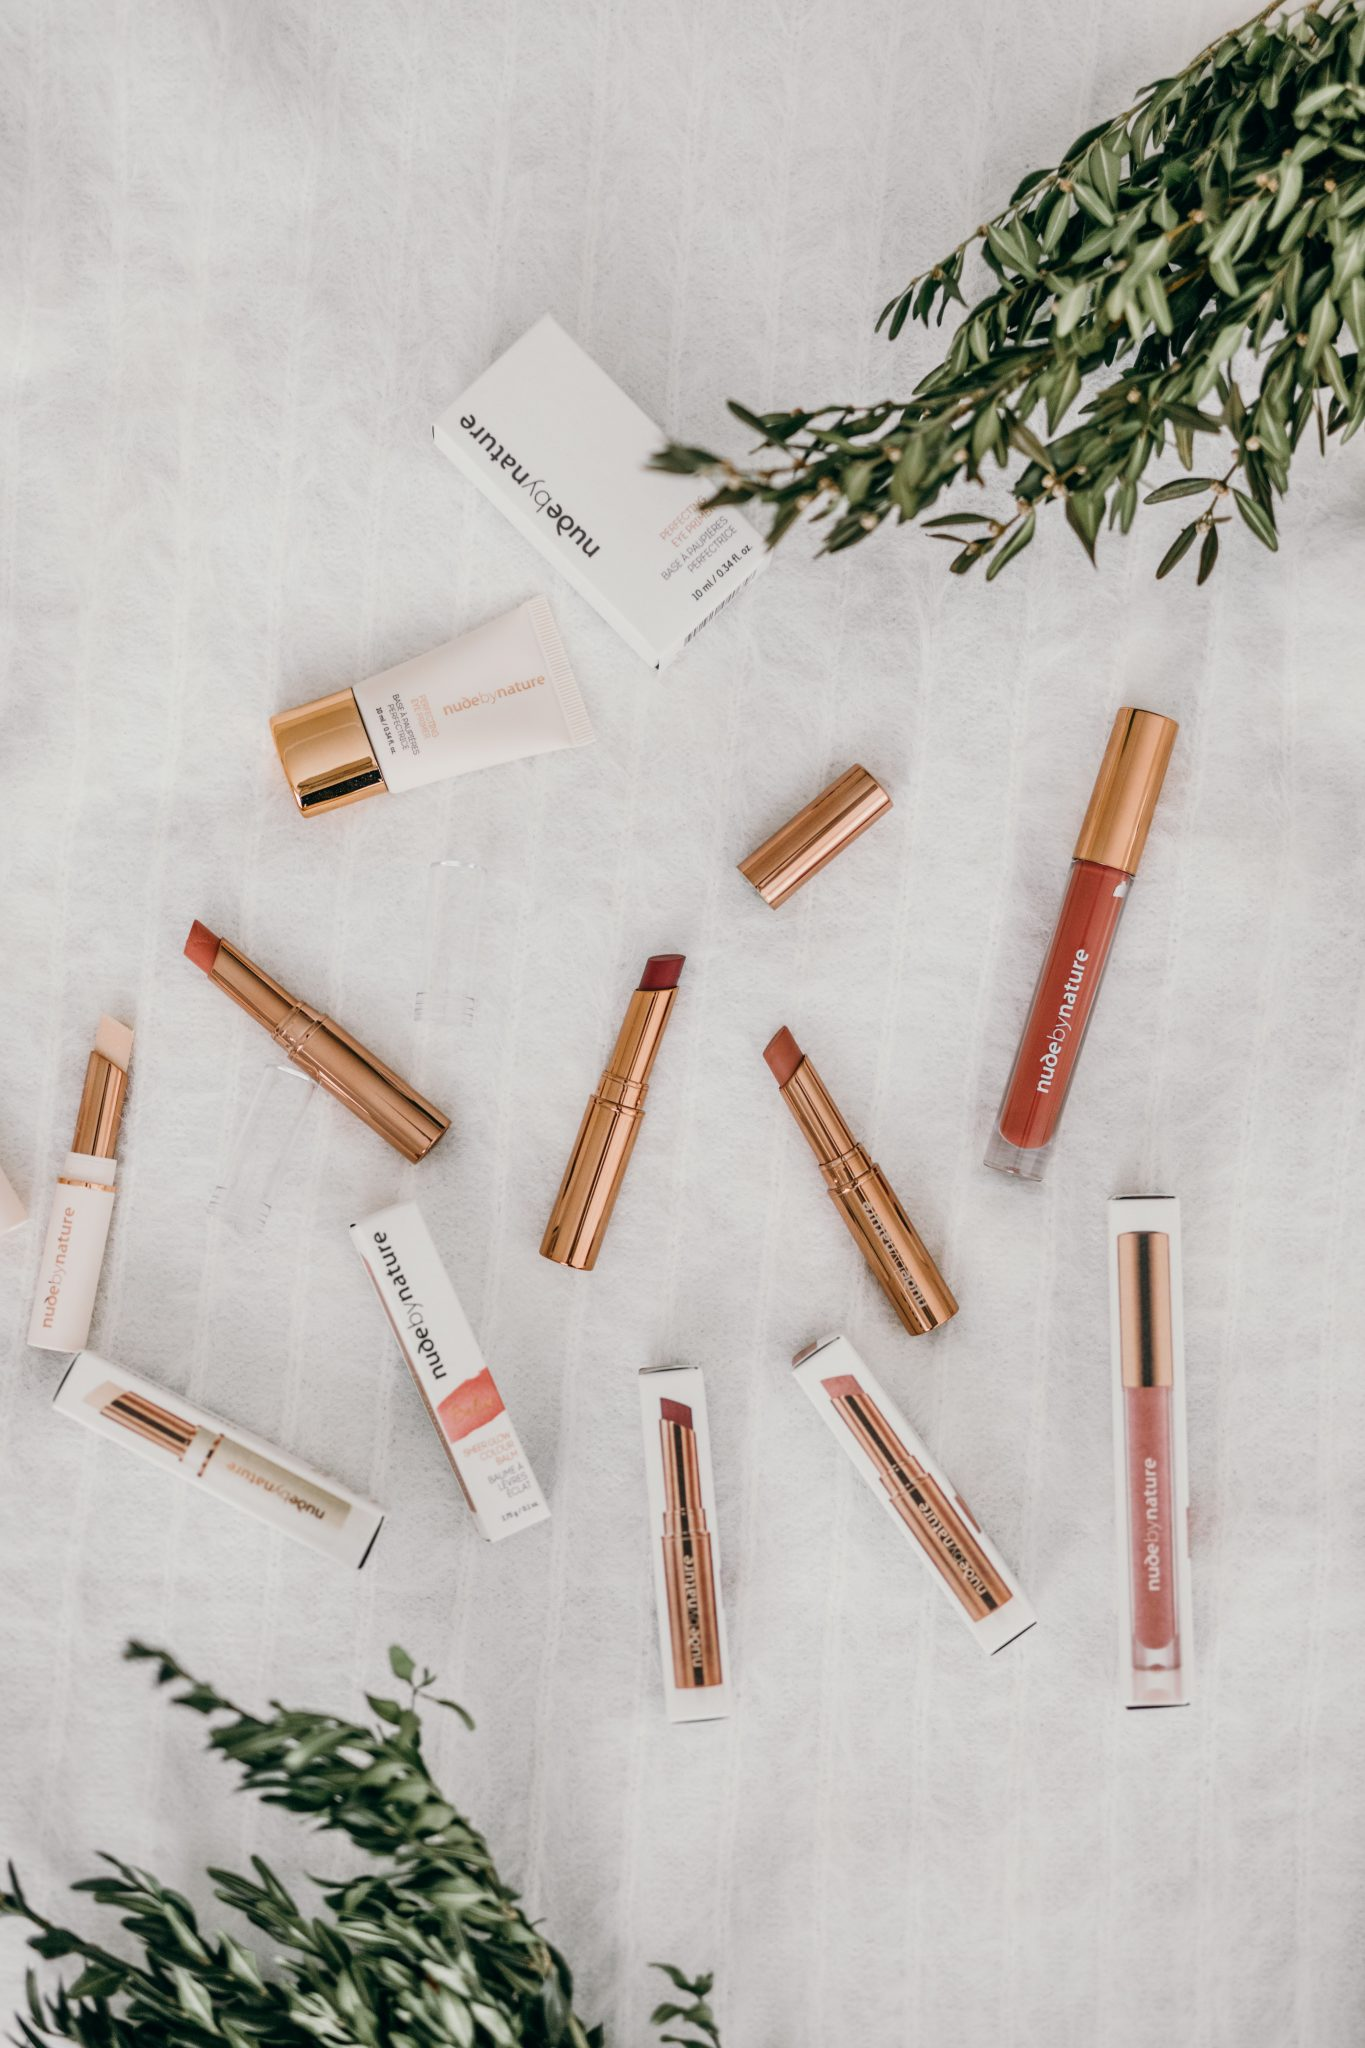 Nude by Nature Lip Products review (1 of 3)